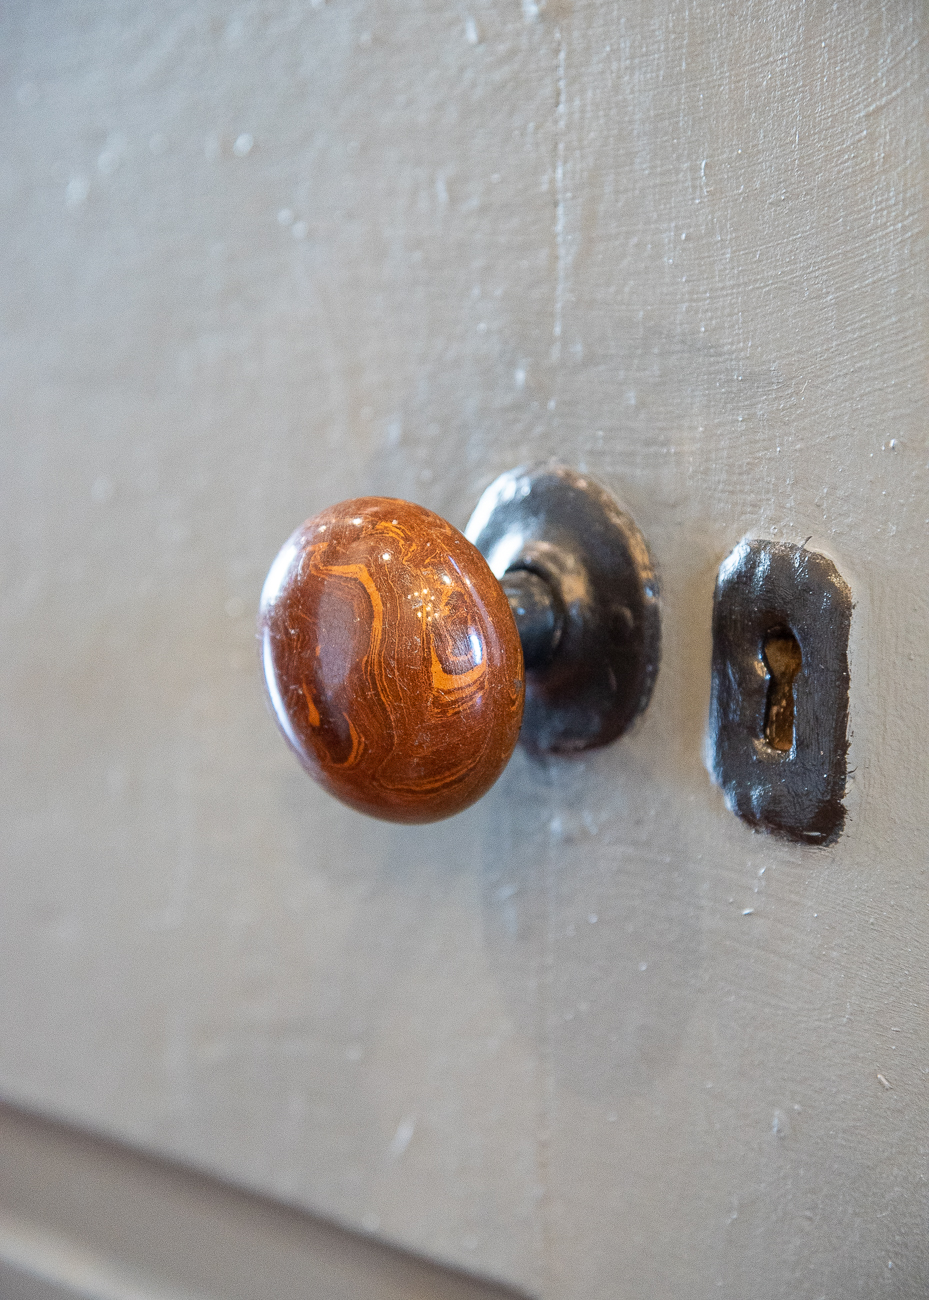 Tom polished many of the old door knobs to look like new. / Image: Phil Armstrong, Cincinnati Refined // Published: 3.15.19